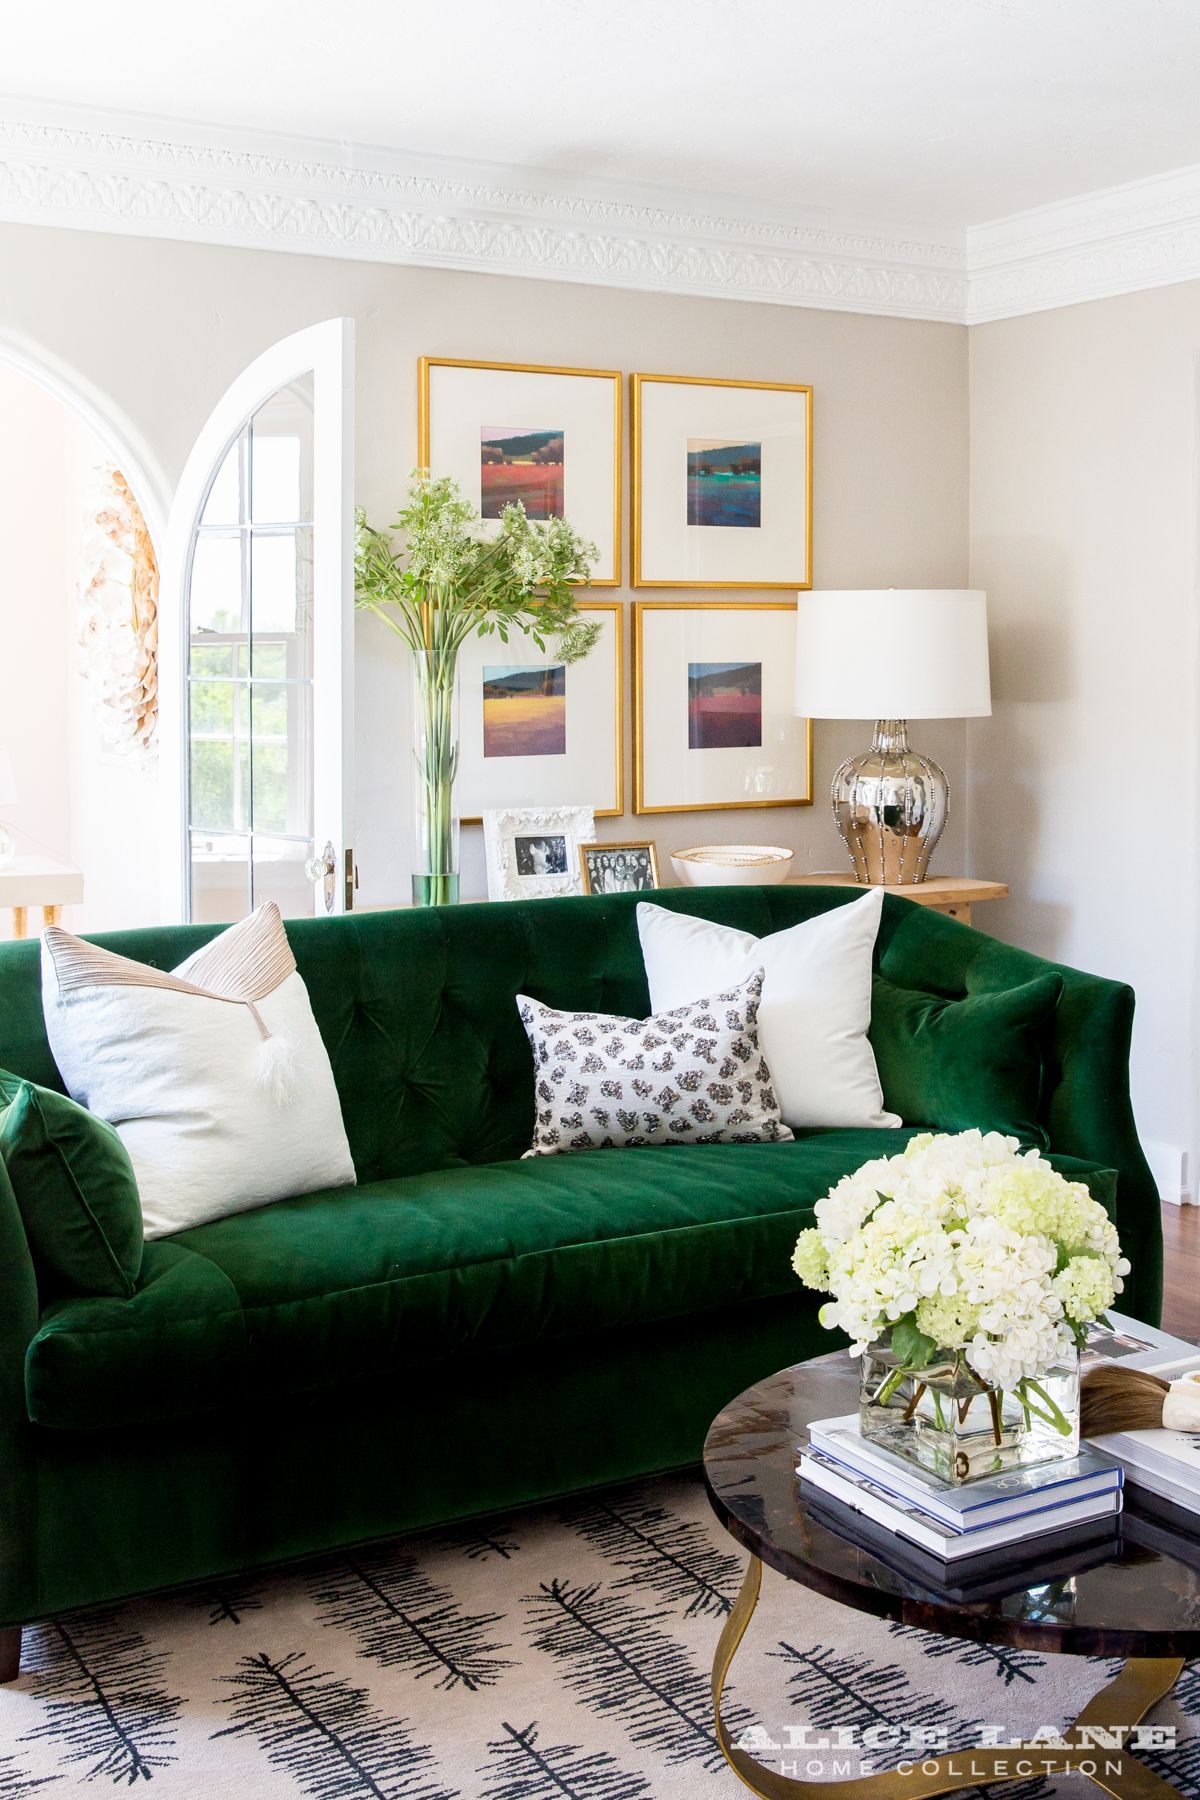 Show N Tell Historic Ivy Flat Remodel Alice Lane Green Sofa Living Room Green Couch Living Room Green Sofa Living